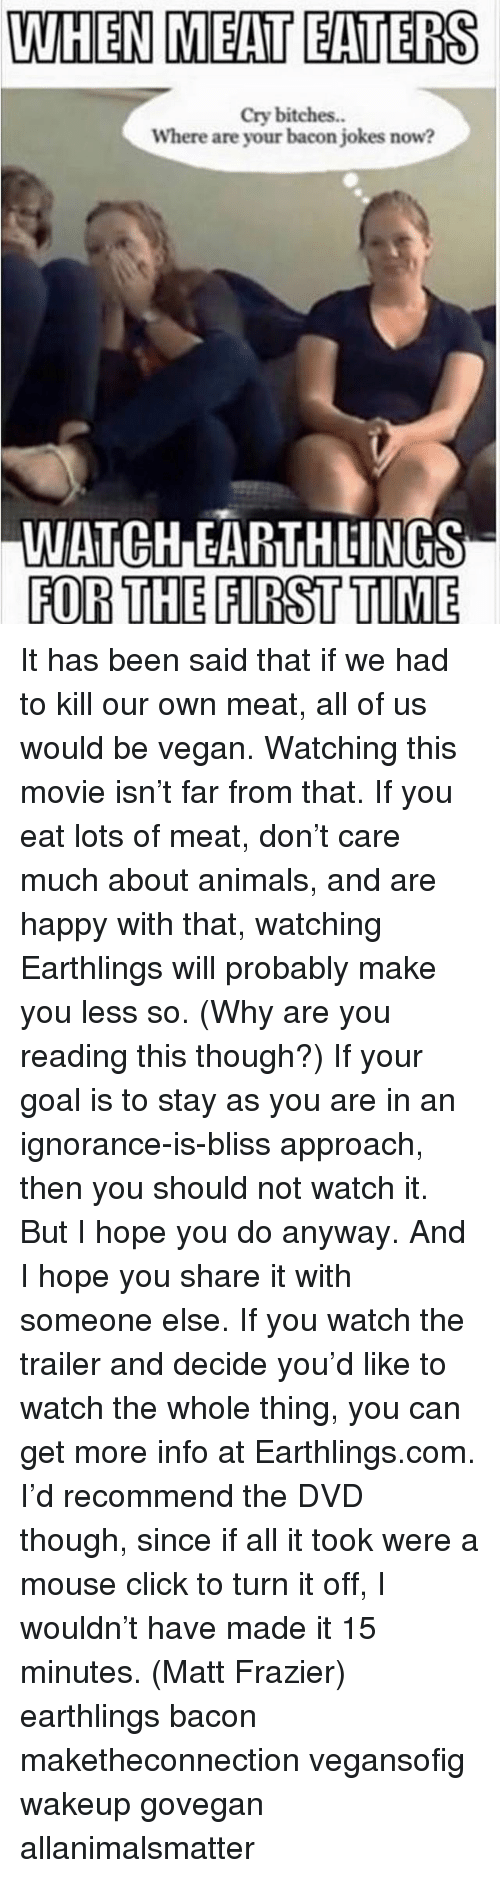 Animals, Click, and Memes: WHEN MEAT EATERS  cry bitches.  Where are your bacon jokes now?  IWATCHDEARTHLINGS  FOR THE FIRST TIME It has been said that if we had to kill our own meat, all of us would be vegan. Watching this movie isn't far from that. If you eat lots of meat, don't care much about animals, and are happy with that, watching Earthlings will probably make you less so. (Why are you reading this though?) If your goal is to stay as you are in an ignorance-is-bliss approach, then you should not watch it. But I hope you do anyway. And I hope you share it with someone else. If you watch the trailer and decide you'd like to watch the whole thing, you can get more info at Earthlings.com. I'd recommend the DVD though, since if all it took were a mouse click to turn it off, I wouldn't have made it 15 minutes. (Matt Frazier) earthlings bacon maketheconnection vegansofig wakeup govegan allanimalsmatter